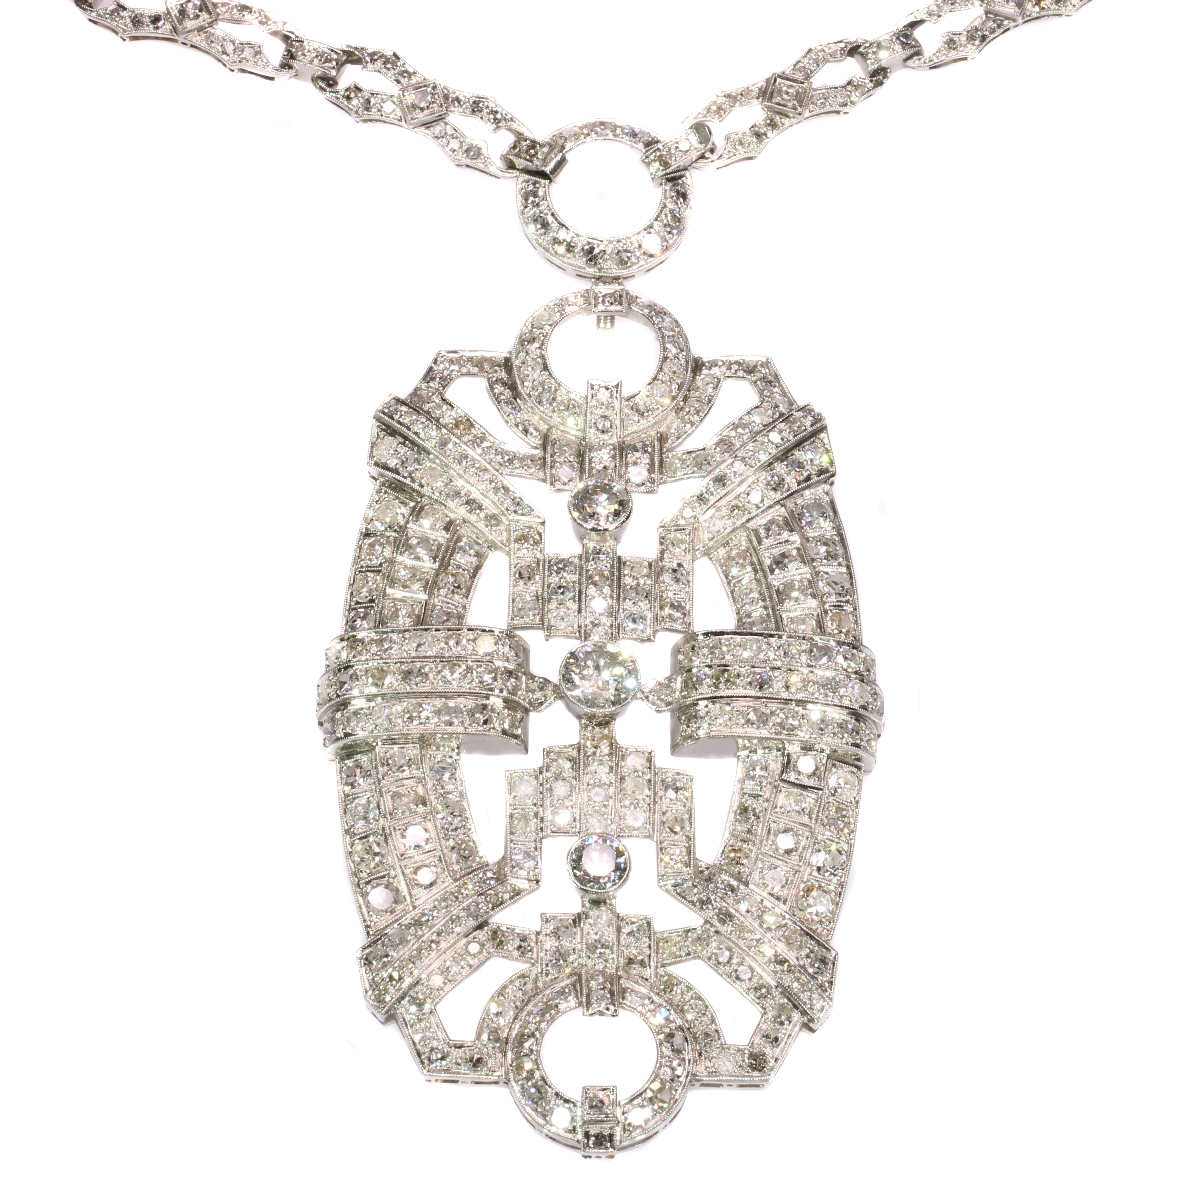 Art Deco platinum pendant necklace with 20+ crt diamonds necklace can be worn as 3 bracelets